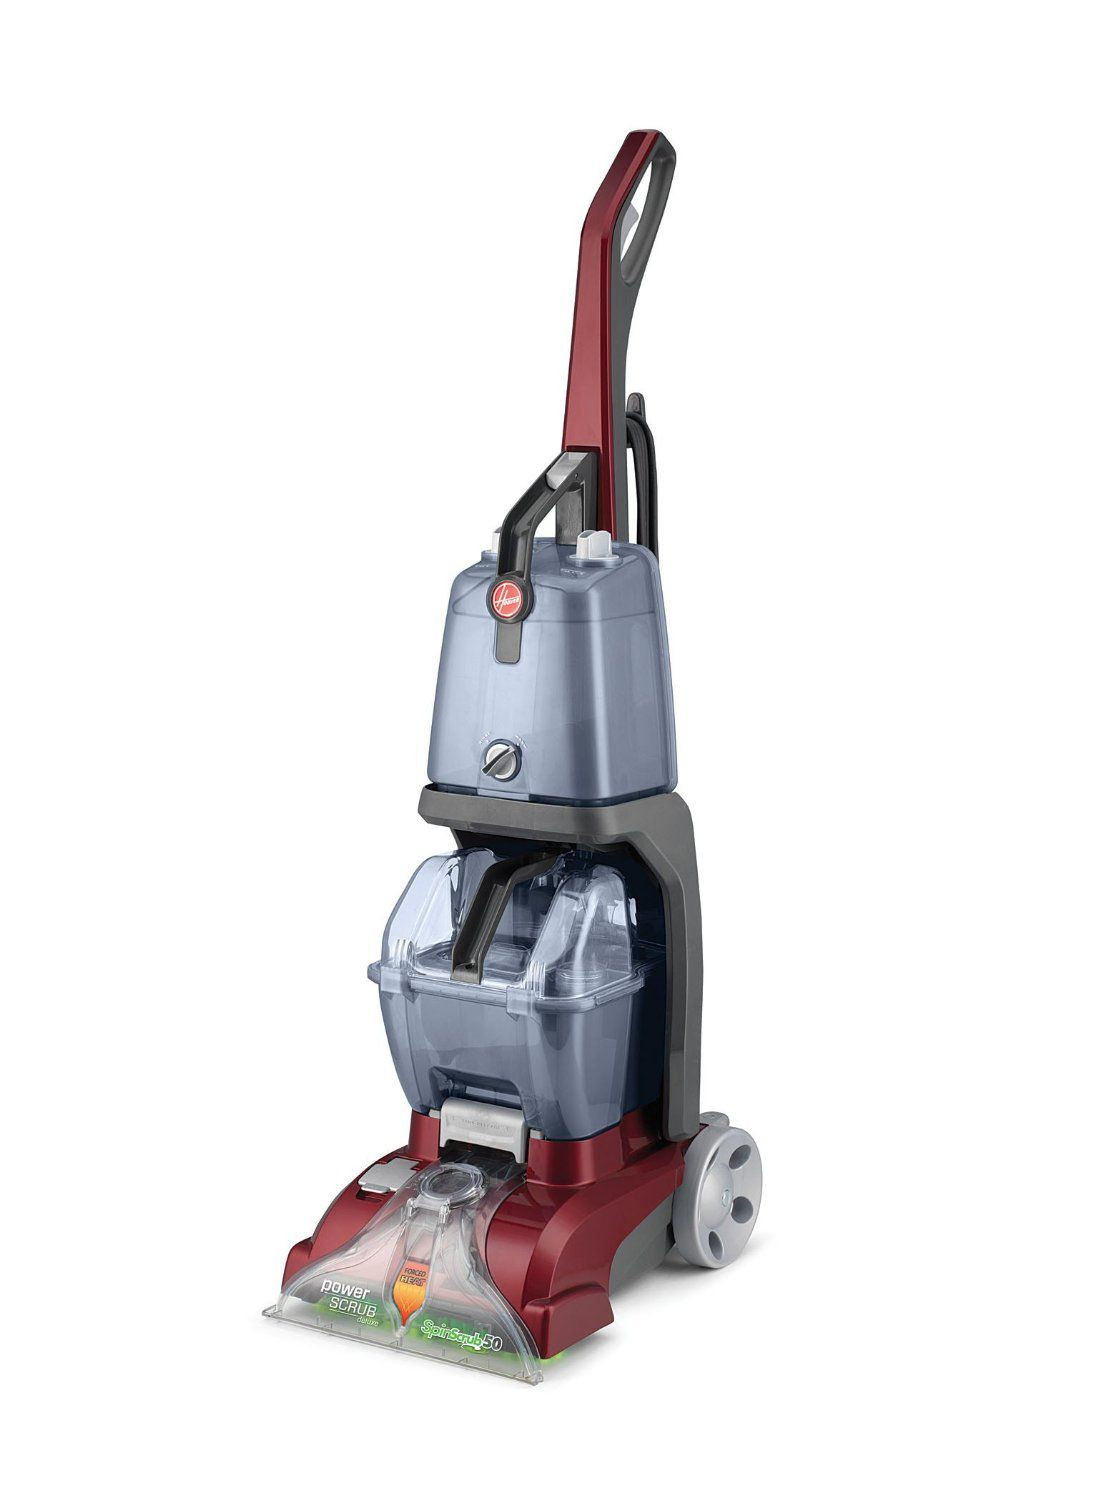 best hardwood floor cleaner machine reviews of the 8 best floor cleaning supplies to buy in 2018 in 01 71lwbb1sgvl sl1500 57ffa1a35f9b5805c2685b97